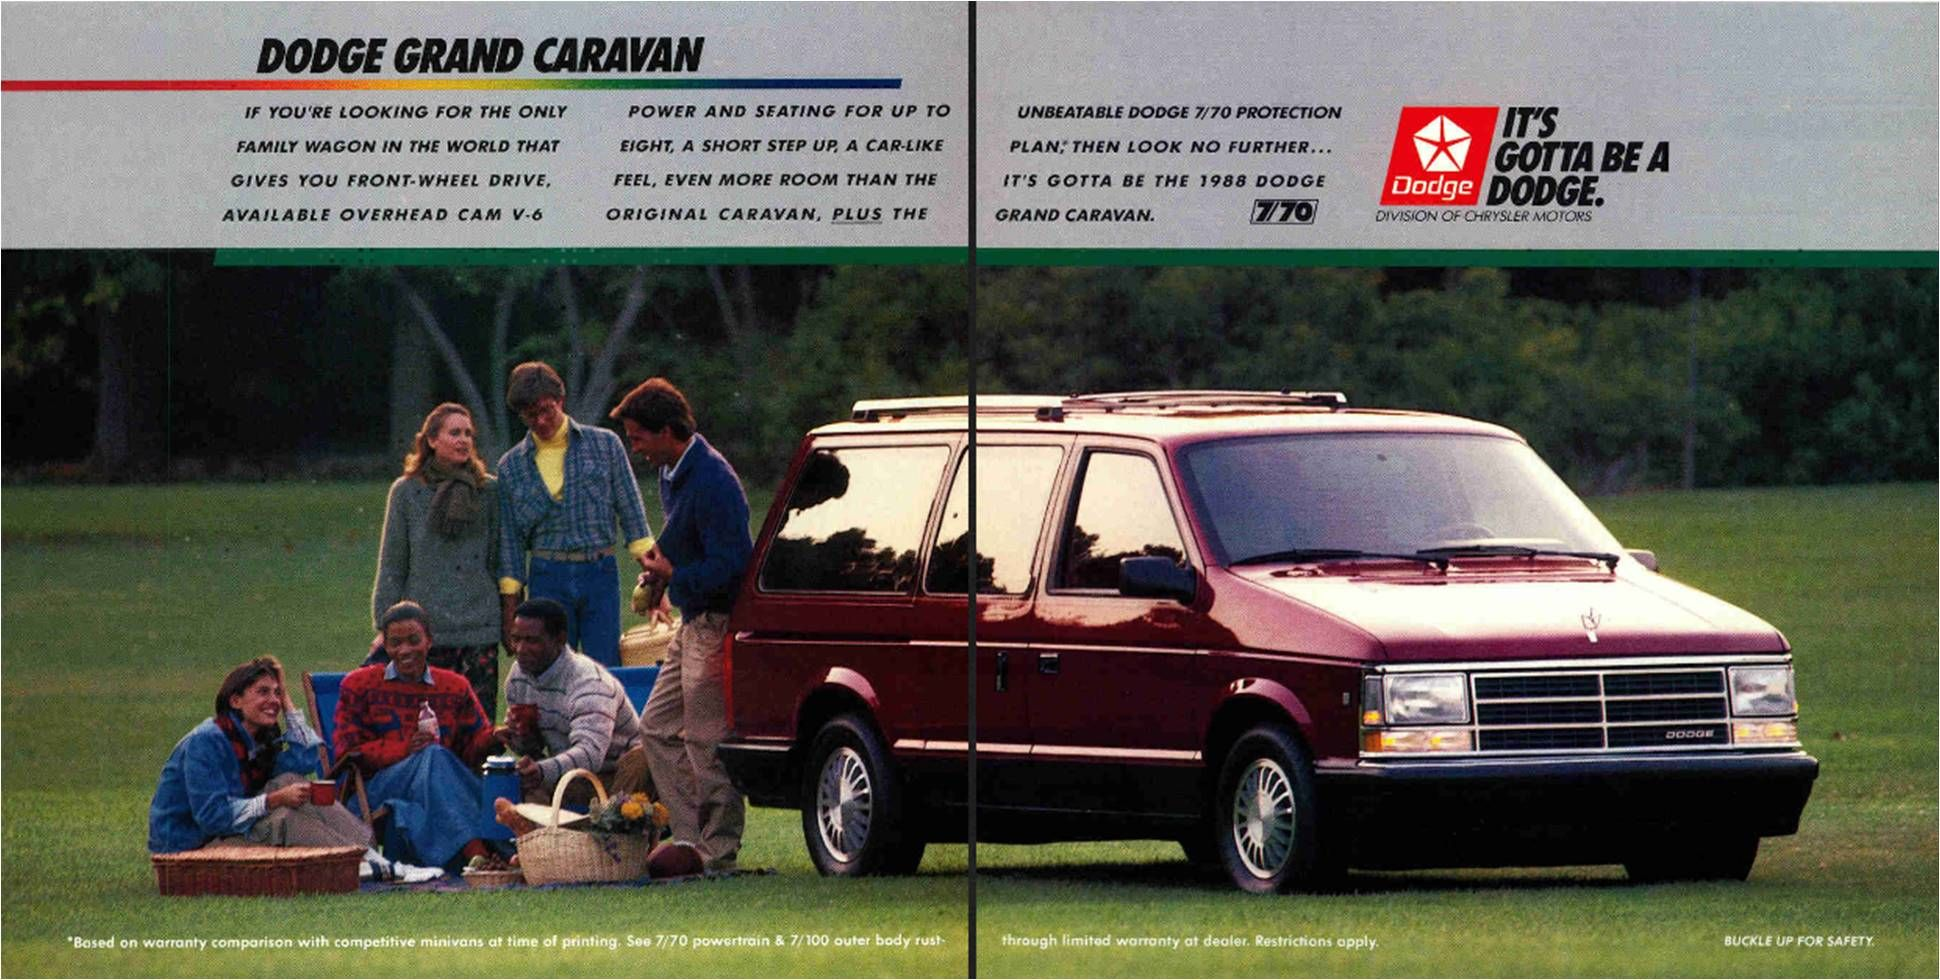 1988 Dodge Grand Caravan Used It To Shuttle Hotel Guests From The